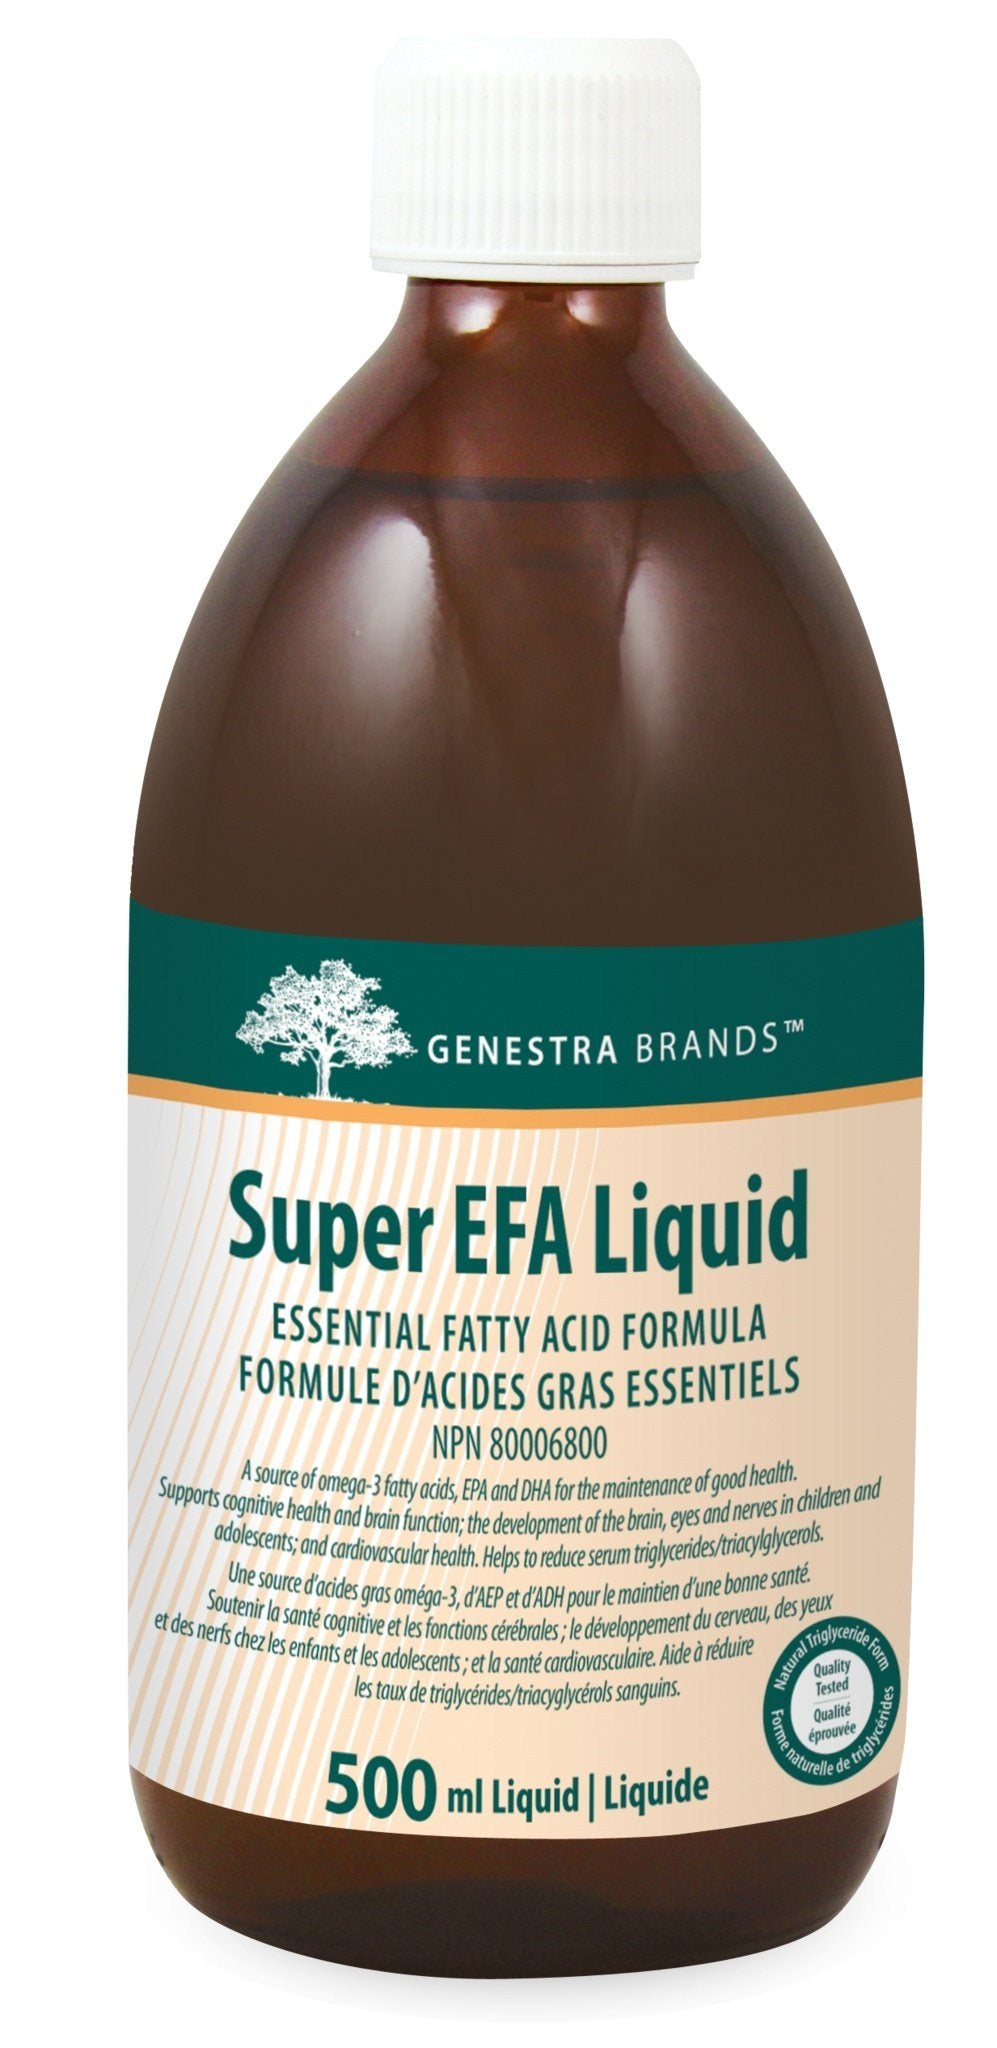 Supplements & Vitamins - Genestra - Super EFA Liquid, 500ml